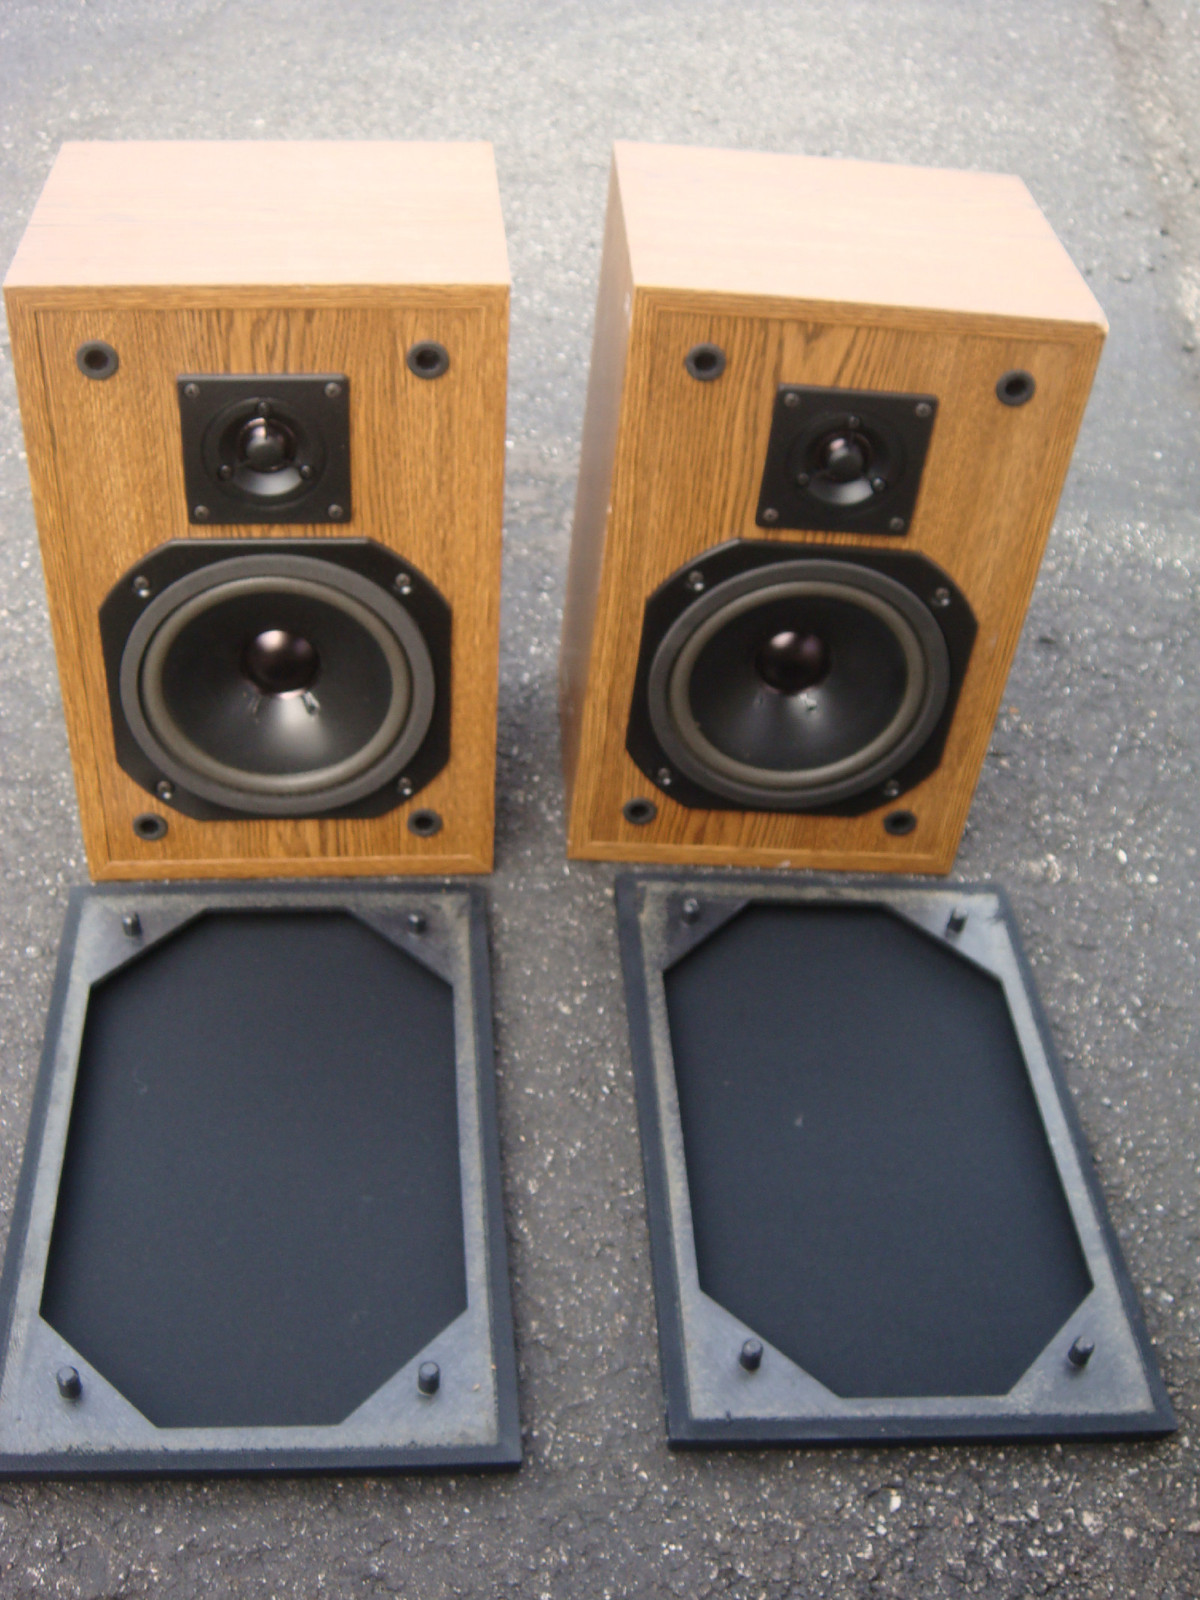 Curtis Mathes Shelf Speakers, model spk602